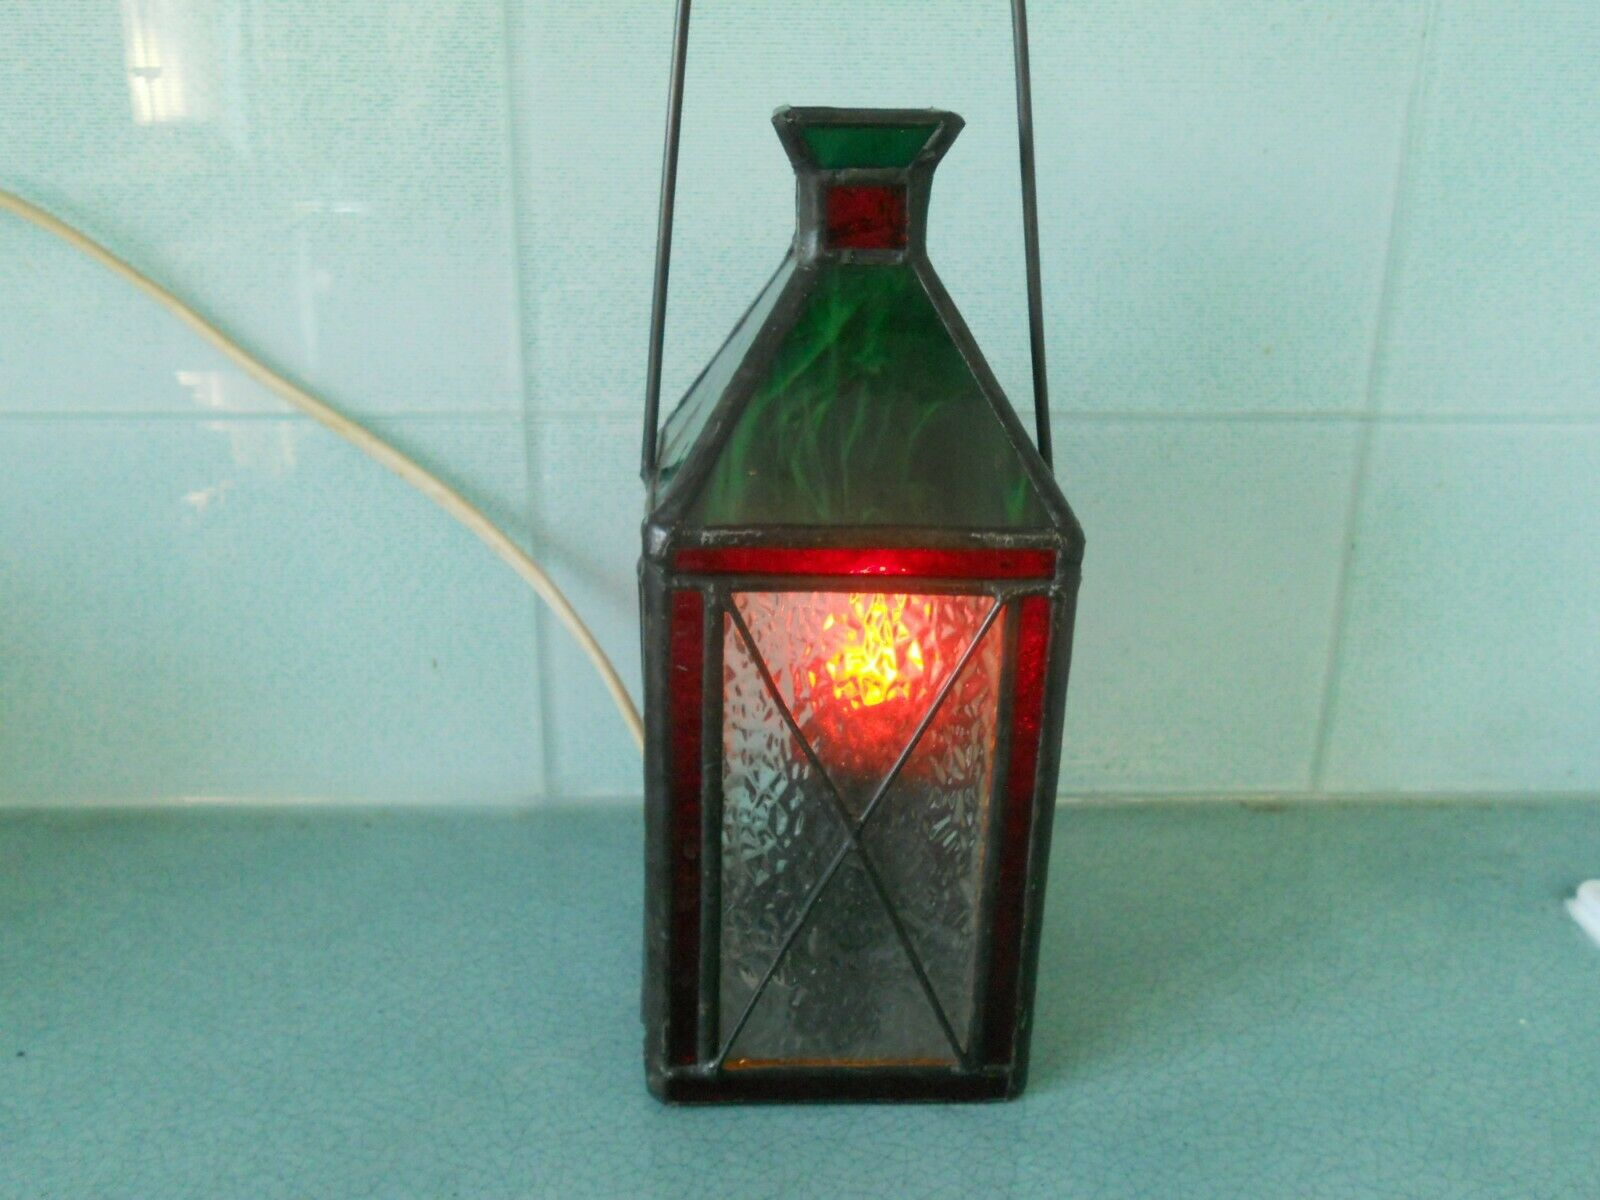 VINTAGE STAINED GLASS LEADED LANTERN STYLE TABLE LAMP